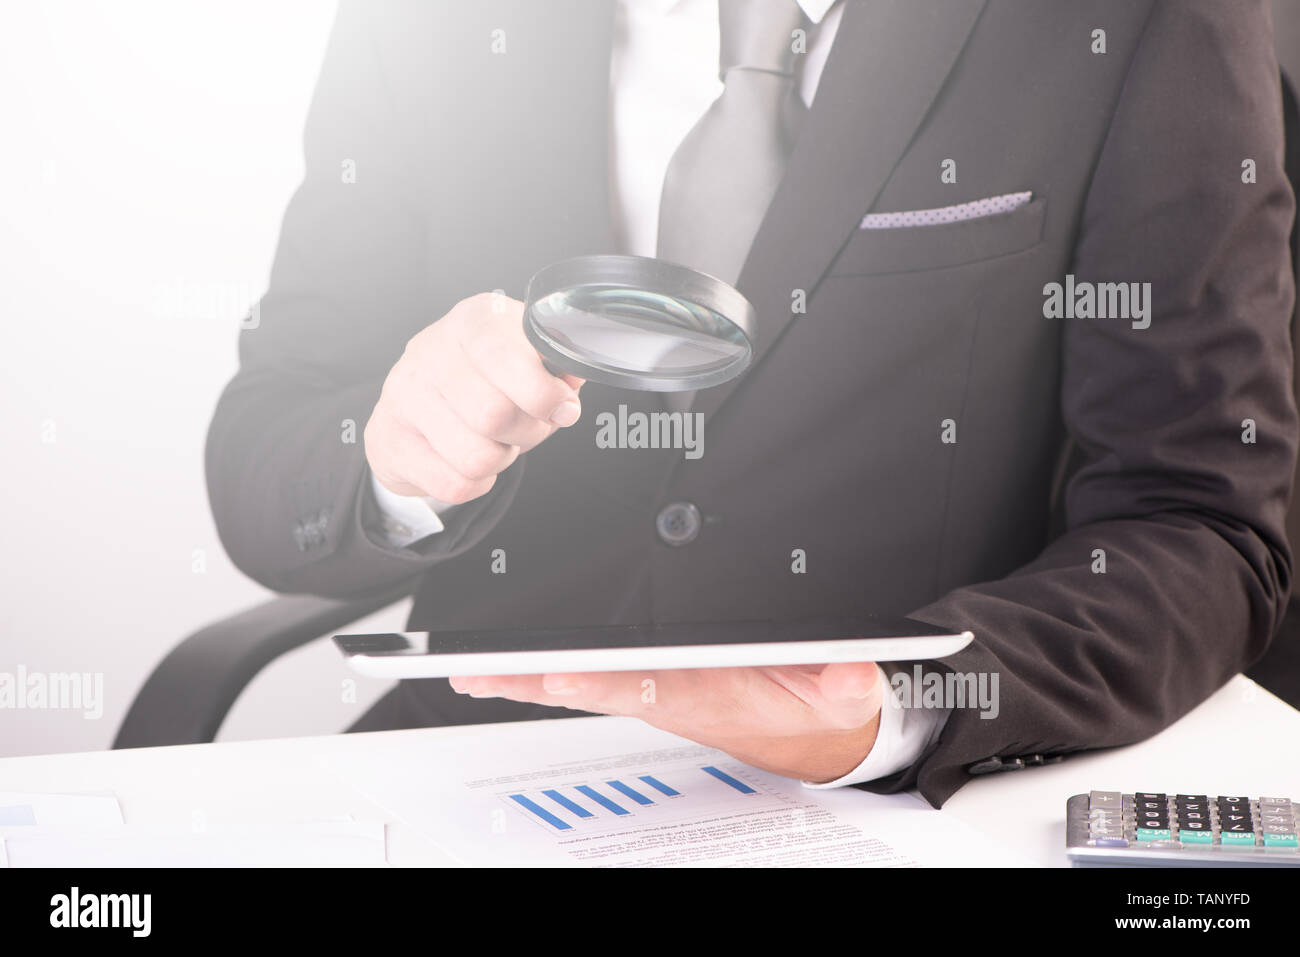 Businessman holding magnifying glass and digital tablet close up Stock Photo